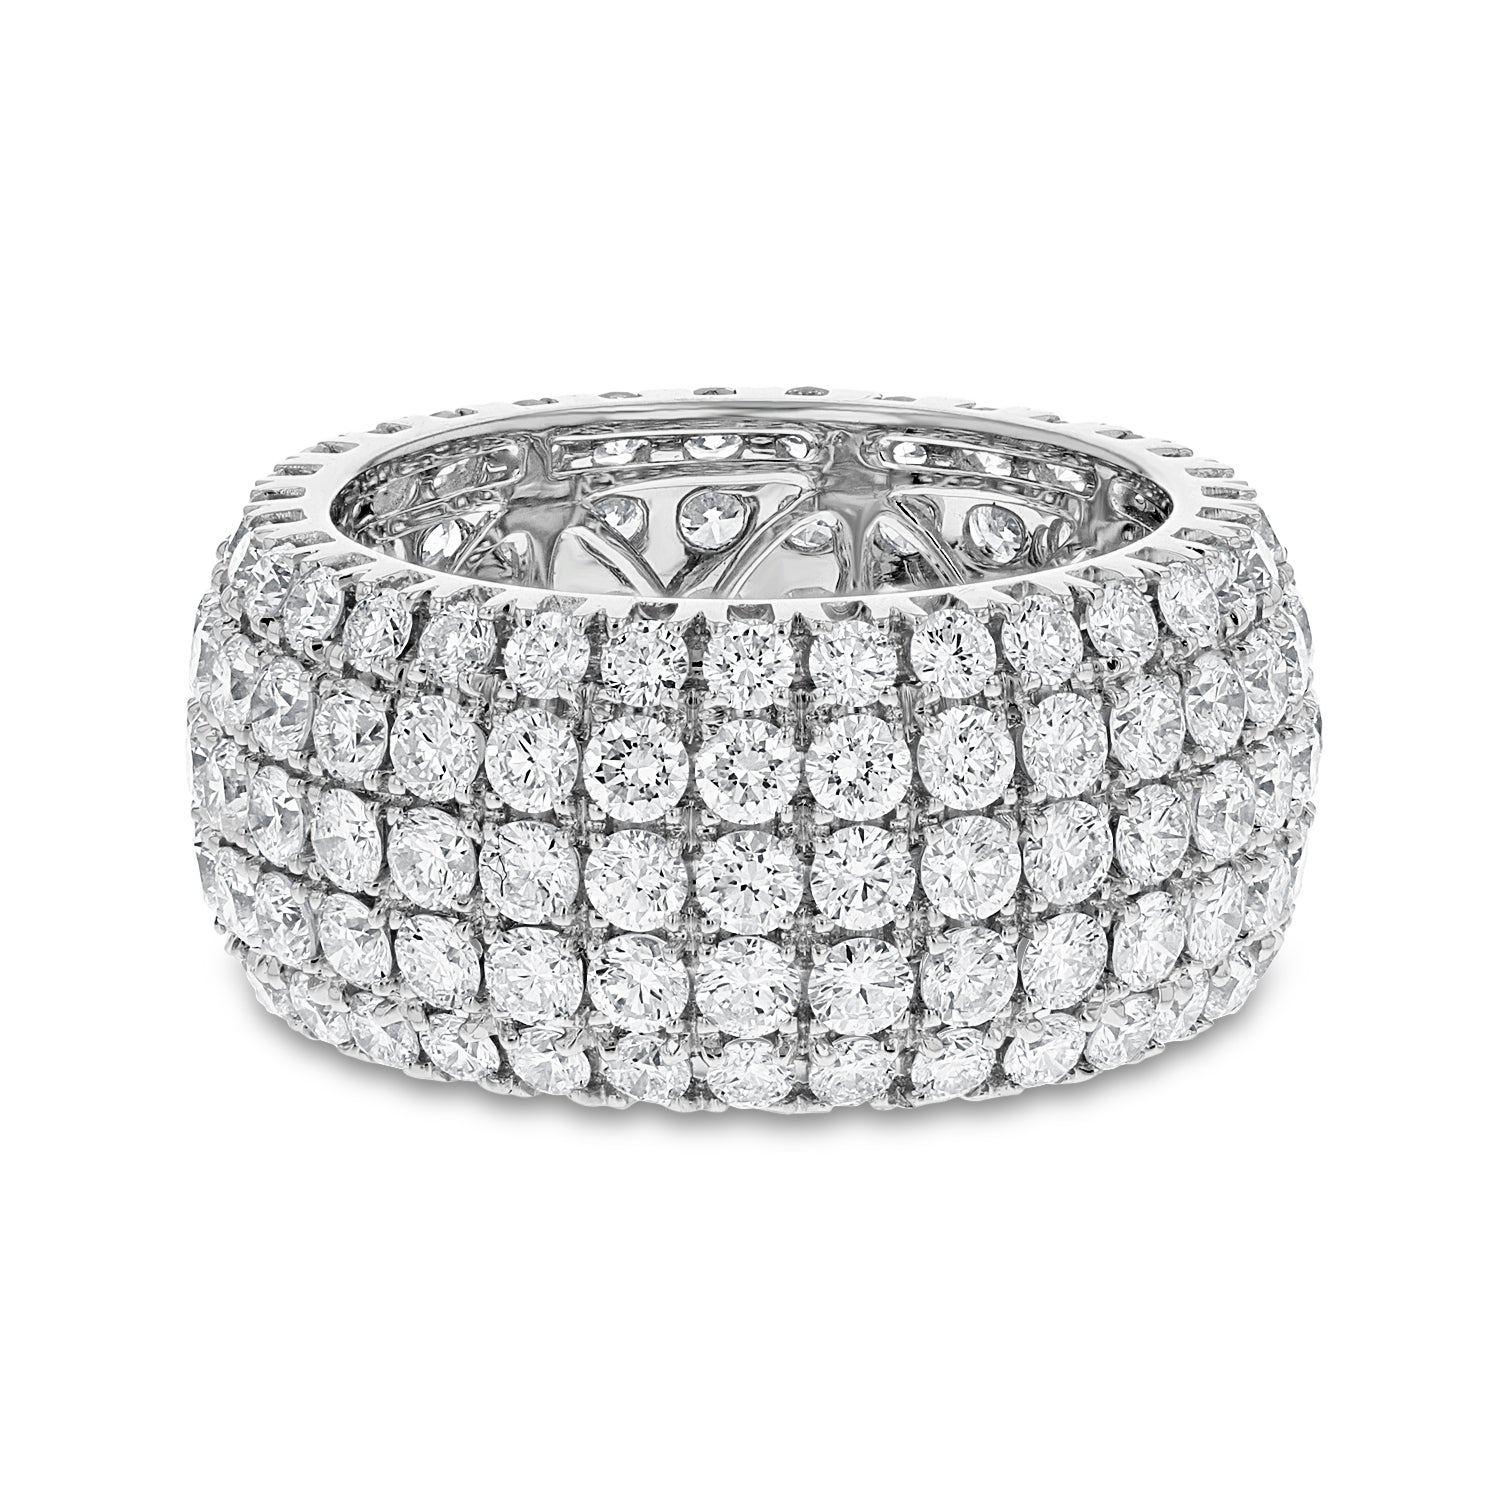 18K White Gold Statement Ring, 5.37 Carats